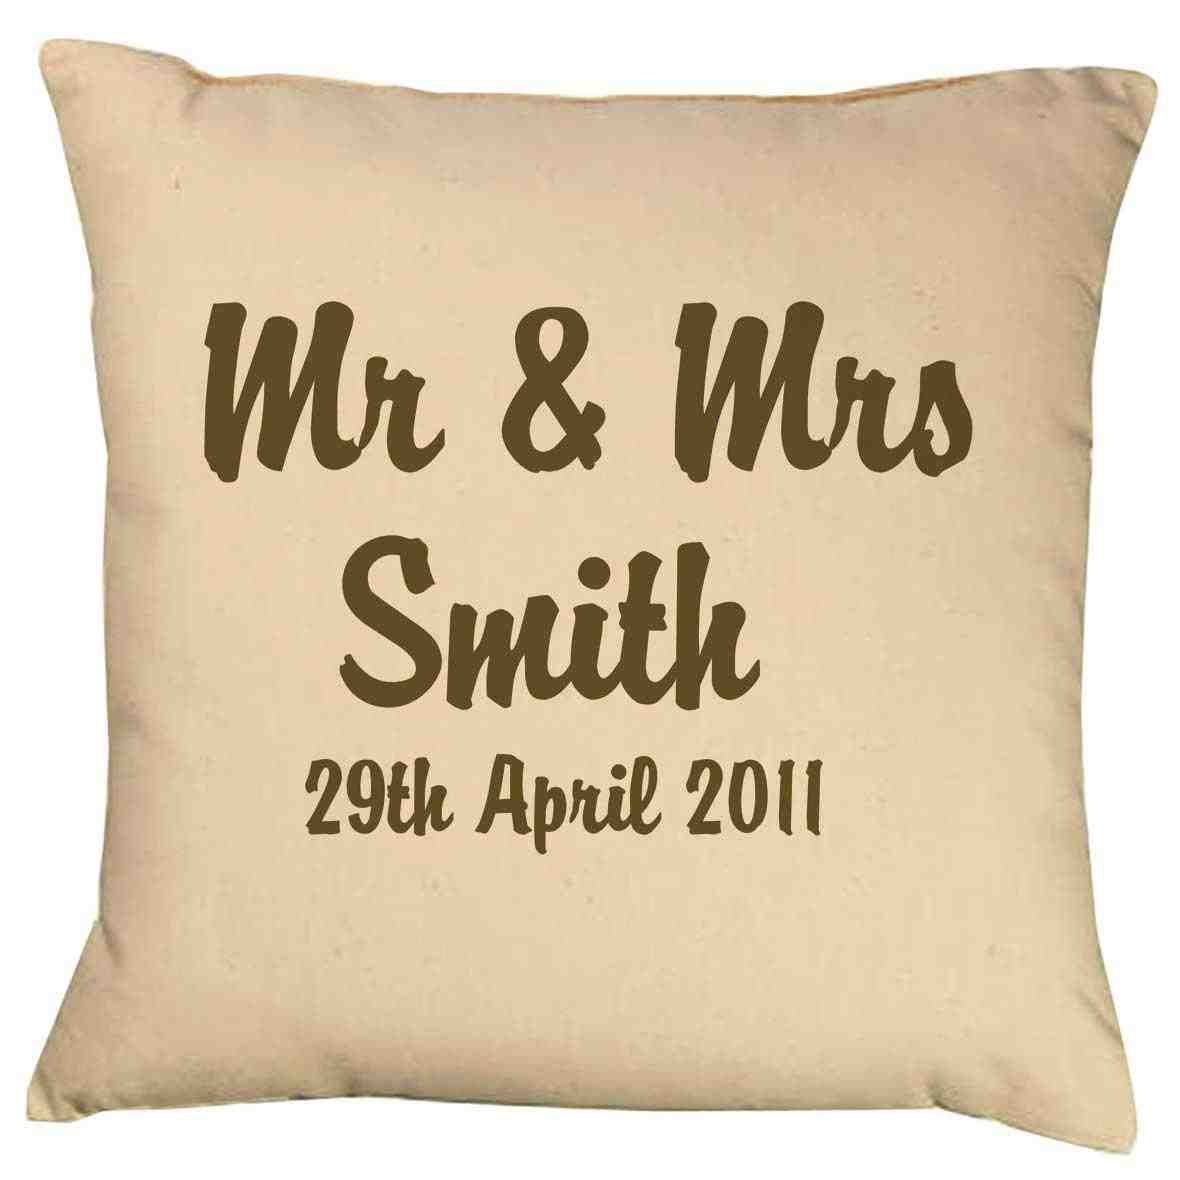 Wedding Gift For Groom And Bride : Wedding Gifts For Bride And Groom - Wedding and Bridal Inspiration